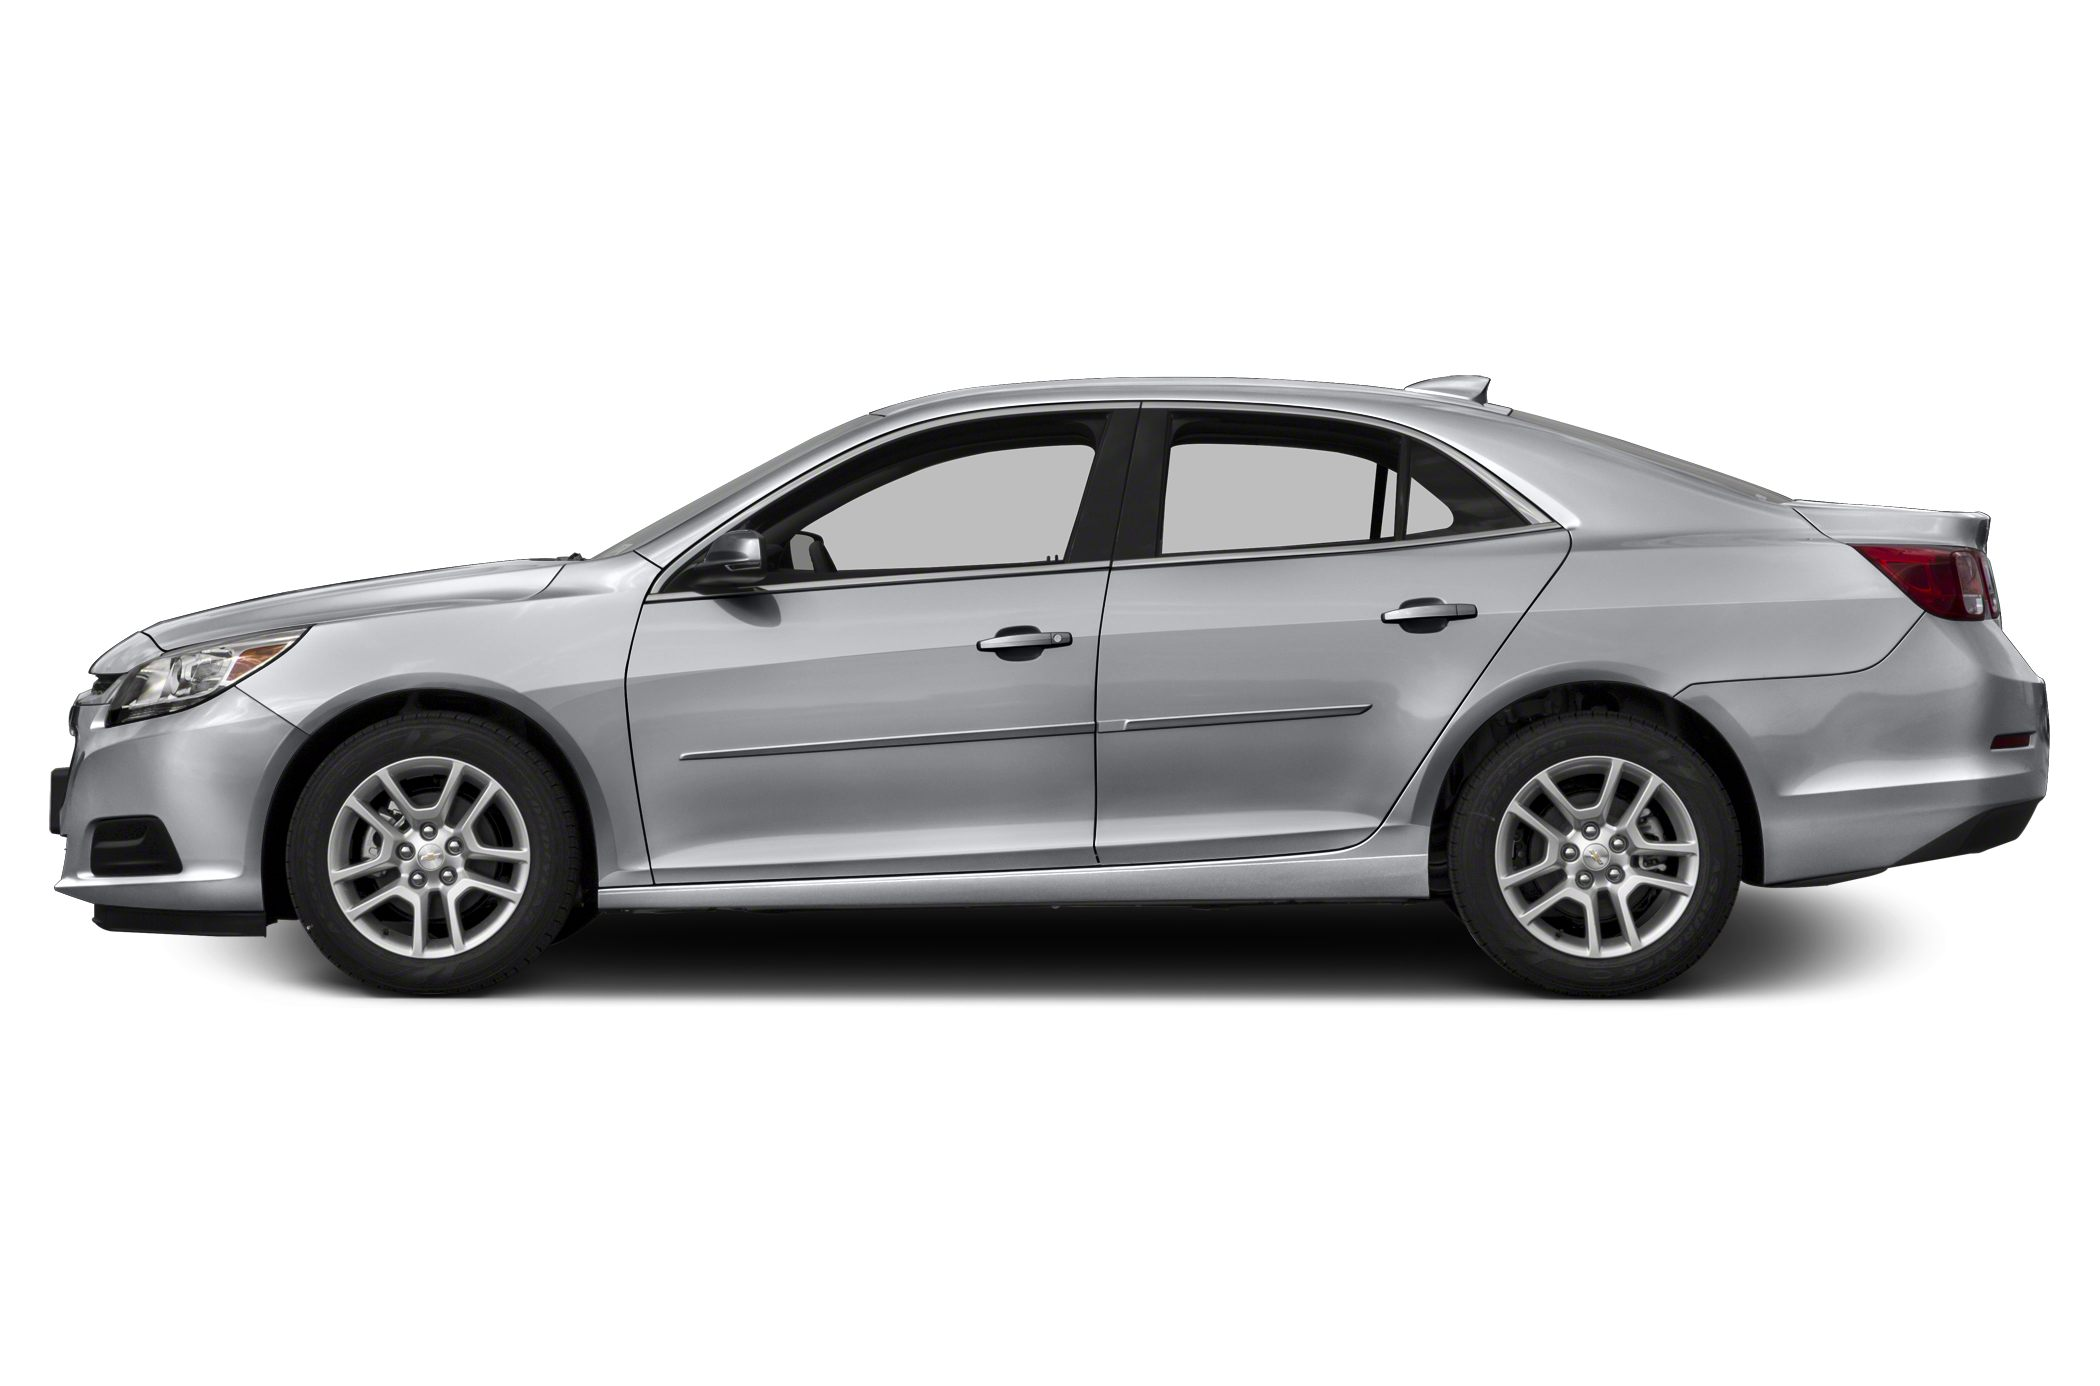 Used 2016 Chevrolet Malibu Limited LT Inventory Vehicle Details at